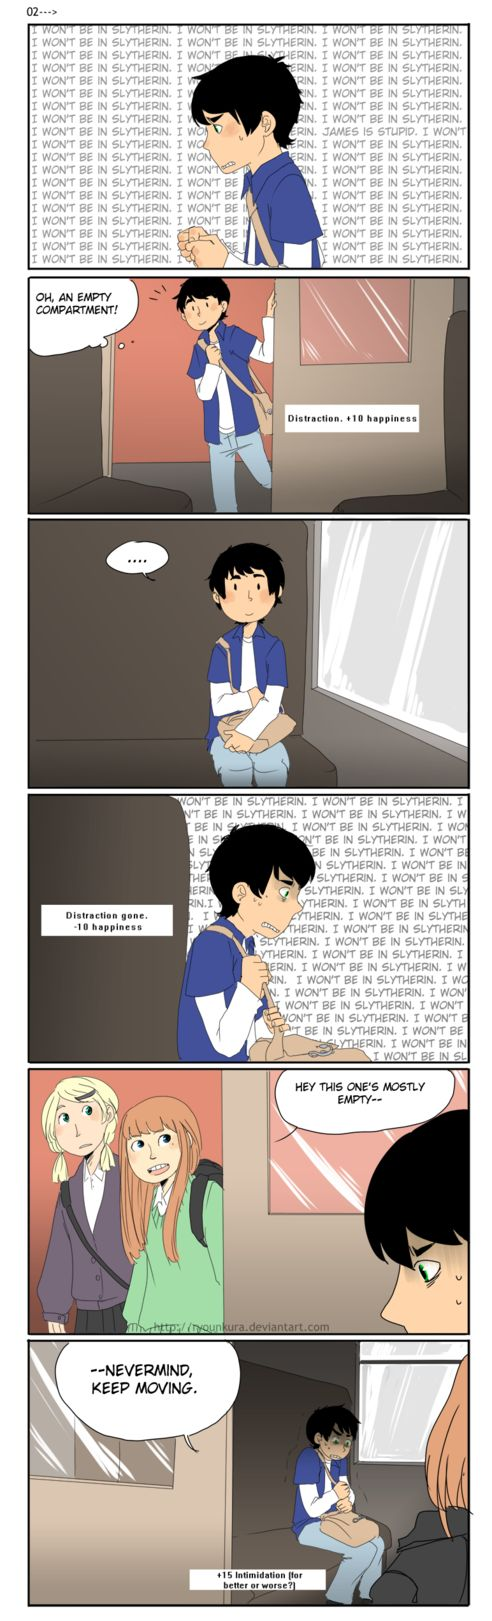 HP: Internal monologue by ryounkura on deviantART